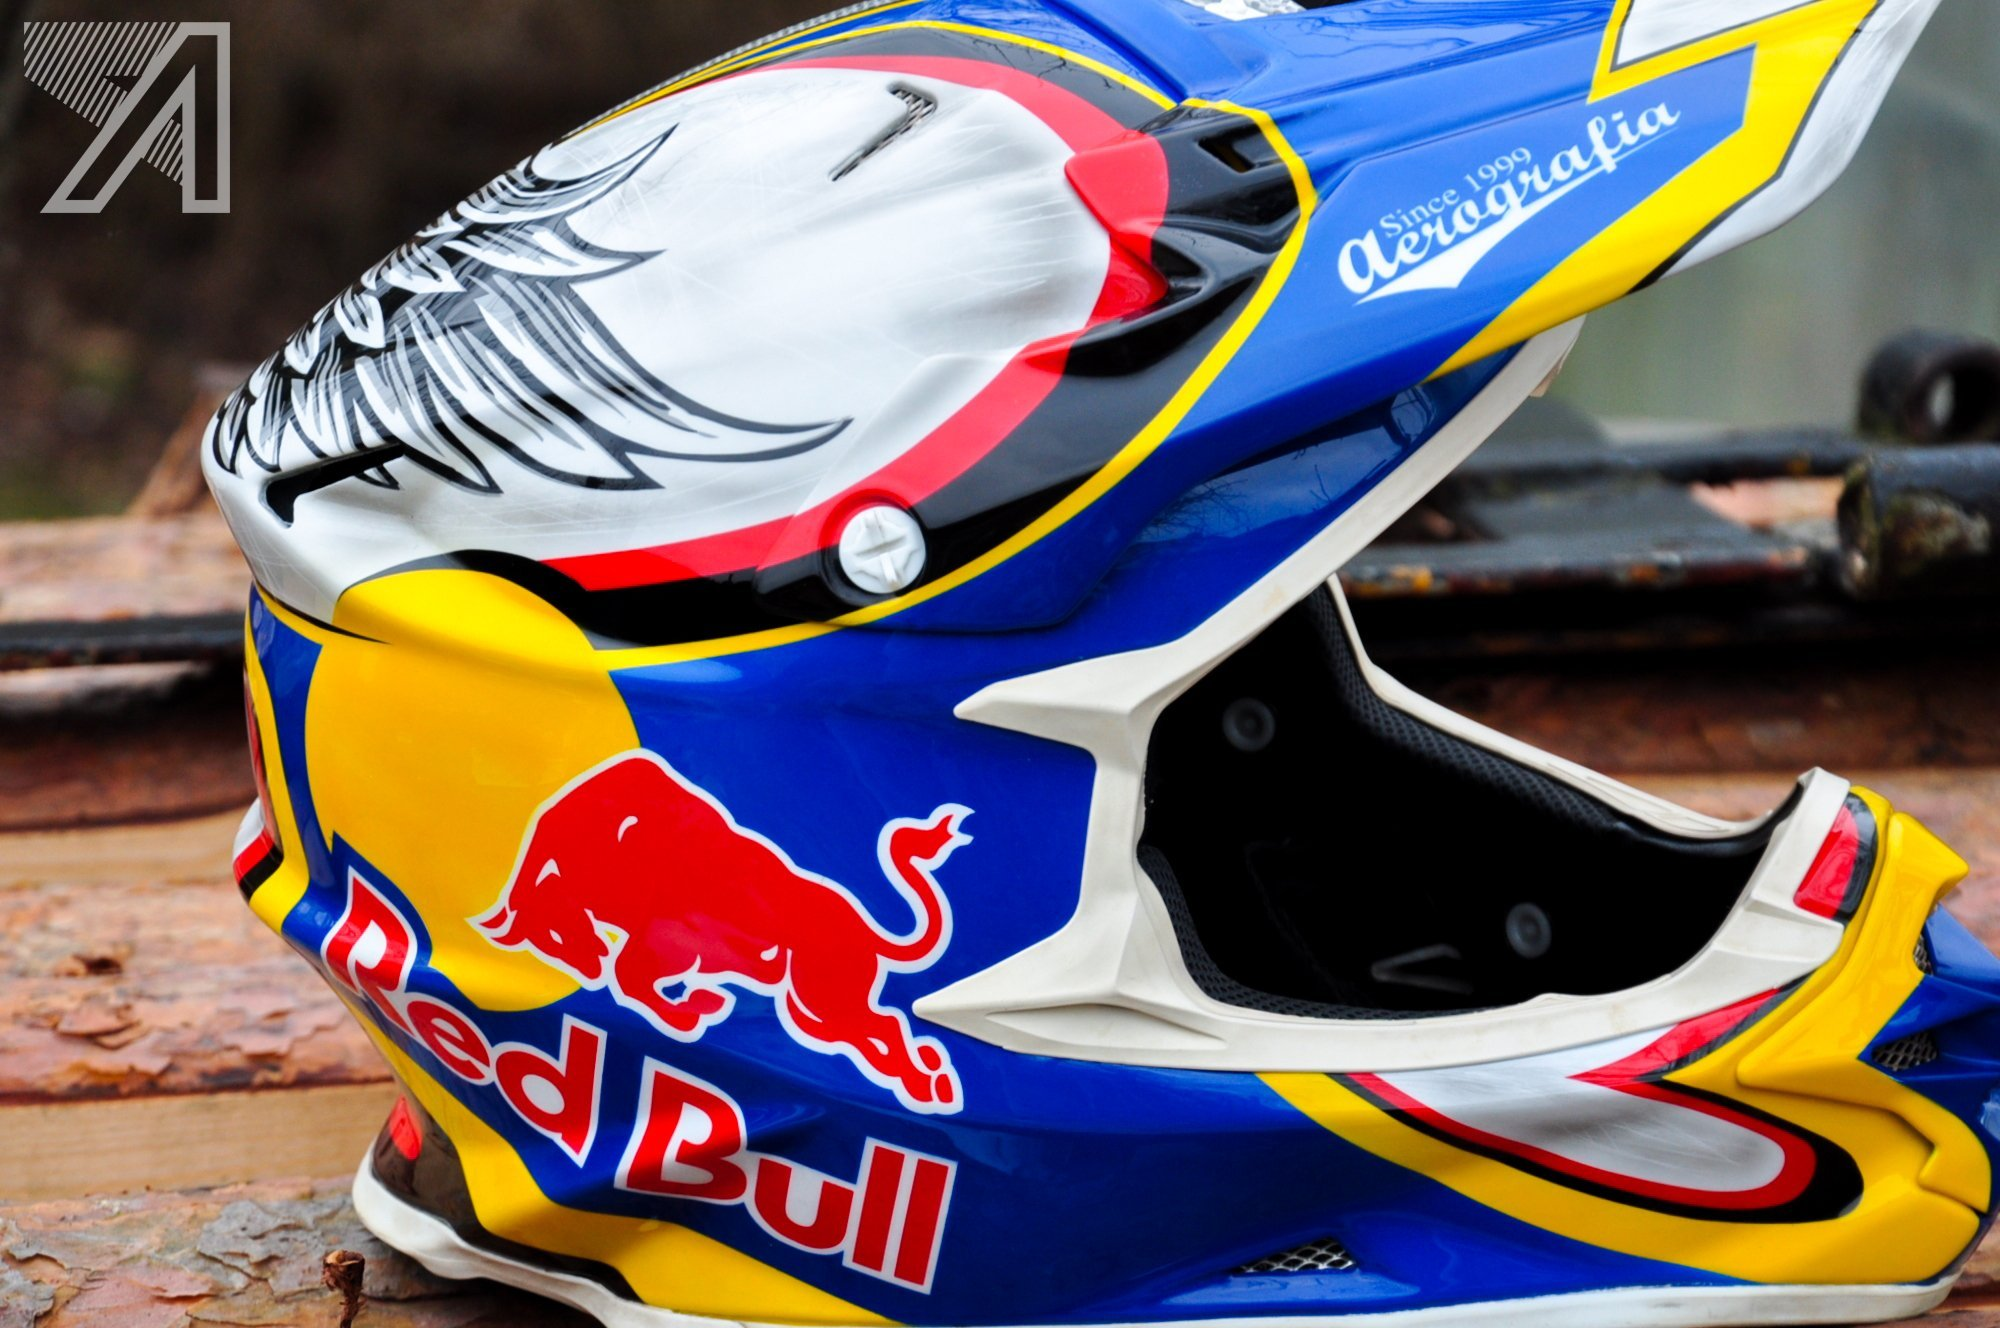 2016-10::1476139184-red-bull-enduro-6.jpg